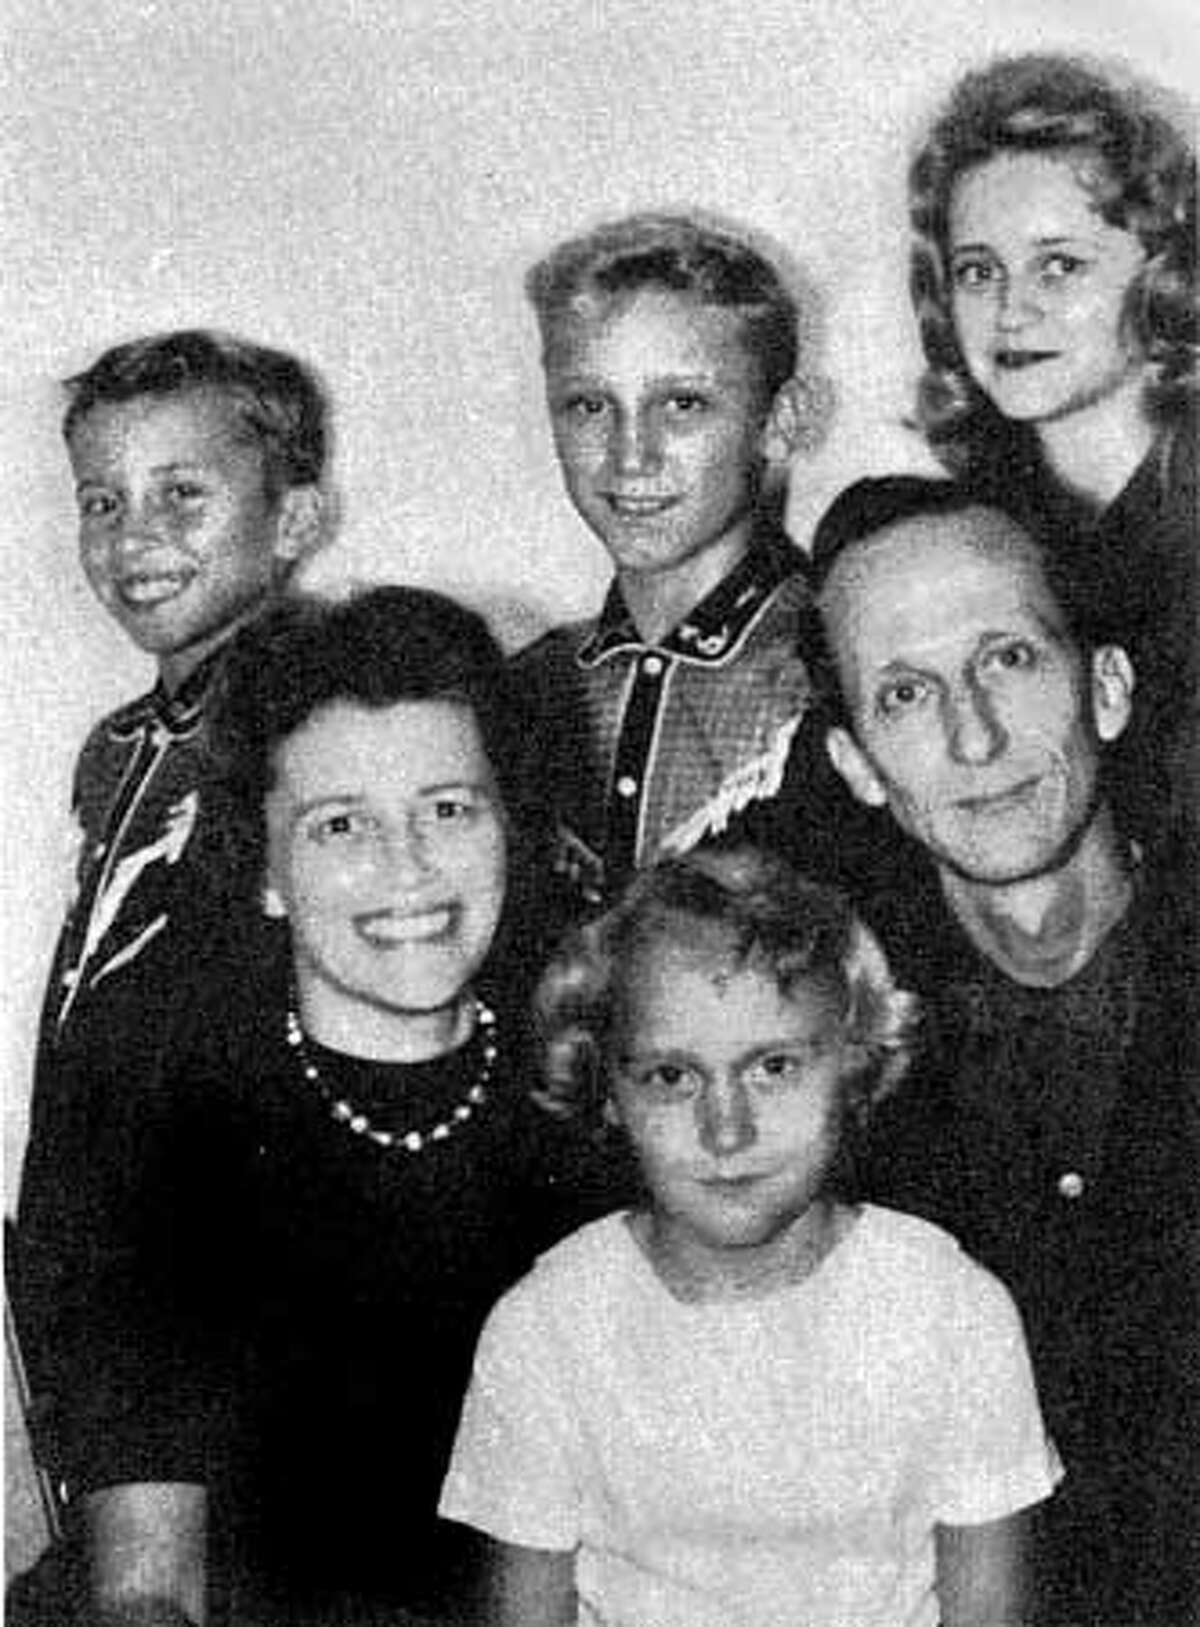 The Berg family in 1961 during their years of evangelism.